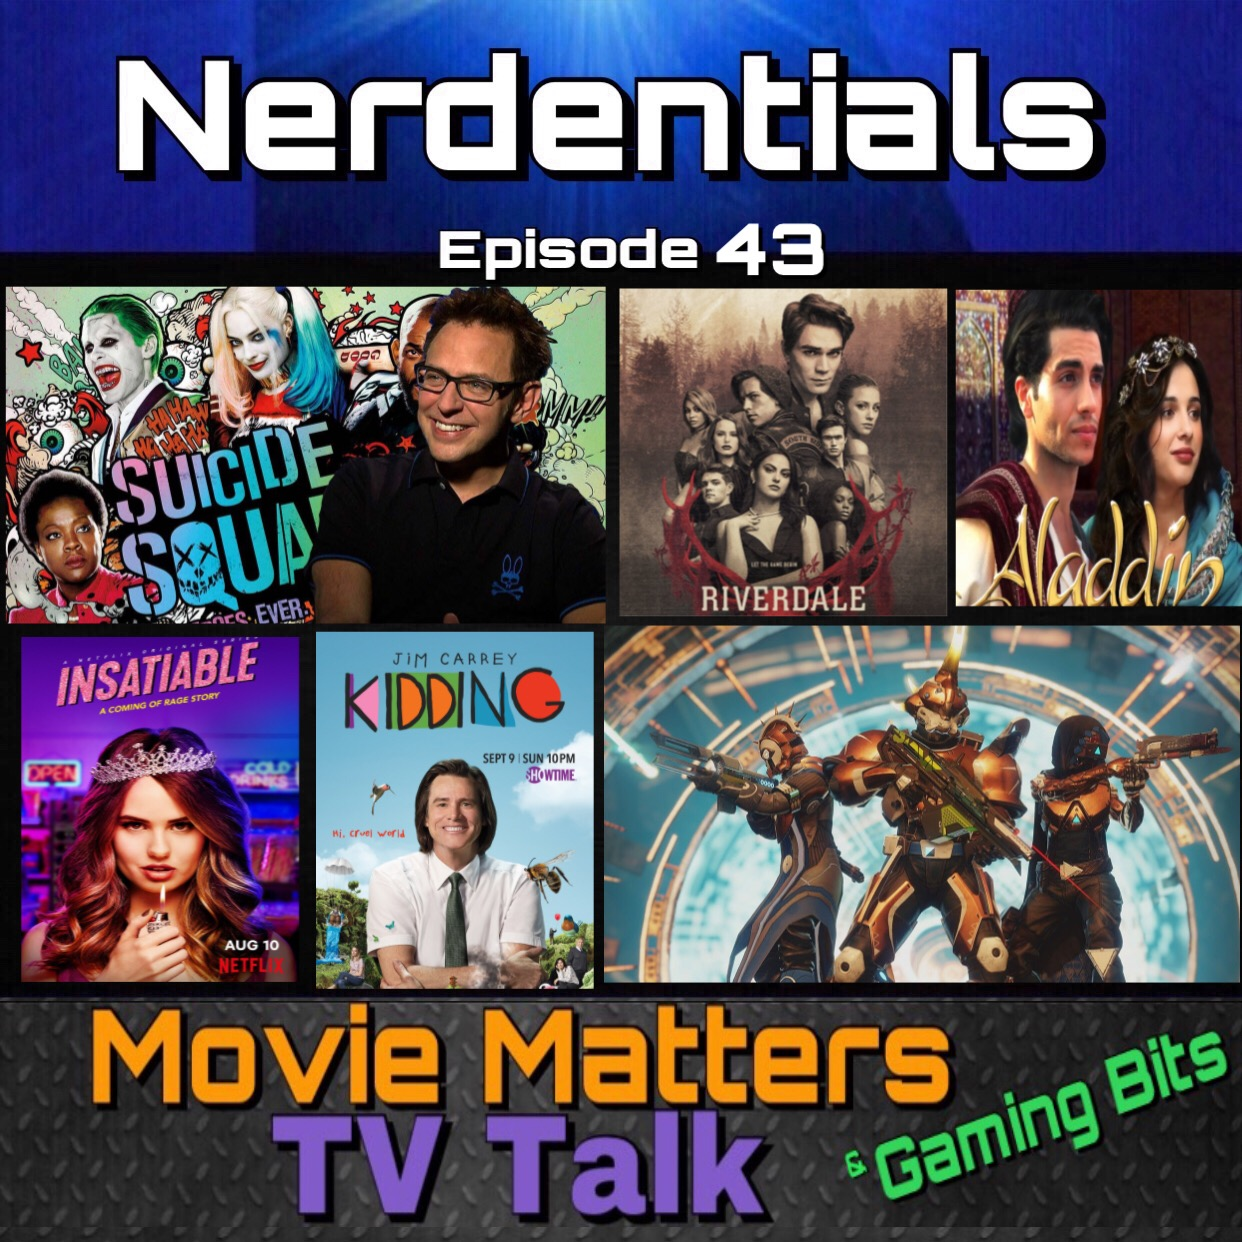 - Welcome to Nerdentials! Your weekly dose of the nerdy essentials. Covering Film, TV, Video Games and Comics.This week your hosts, Joe, Matt, Nick and Lynn kick things off with our thoughts on DC Warner Bros picking up James Gunn to write and maybe Direct the next Suicide Squad...Then shortly after Joe loses connection and the rest of the crew carry on without him by giving you a variety of topics!From Jim Carry's New SHOWTIME series Kidding to Disney's Live action adaptation of Aladdin. To Thoughts on Netflix's Insatiable and the first impressions of Riverdale Season 3. Then the guys finish things off with some current Destiny 2: Forsaken talk!